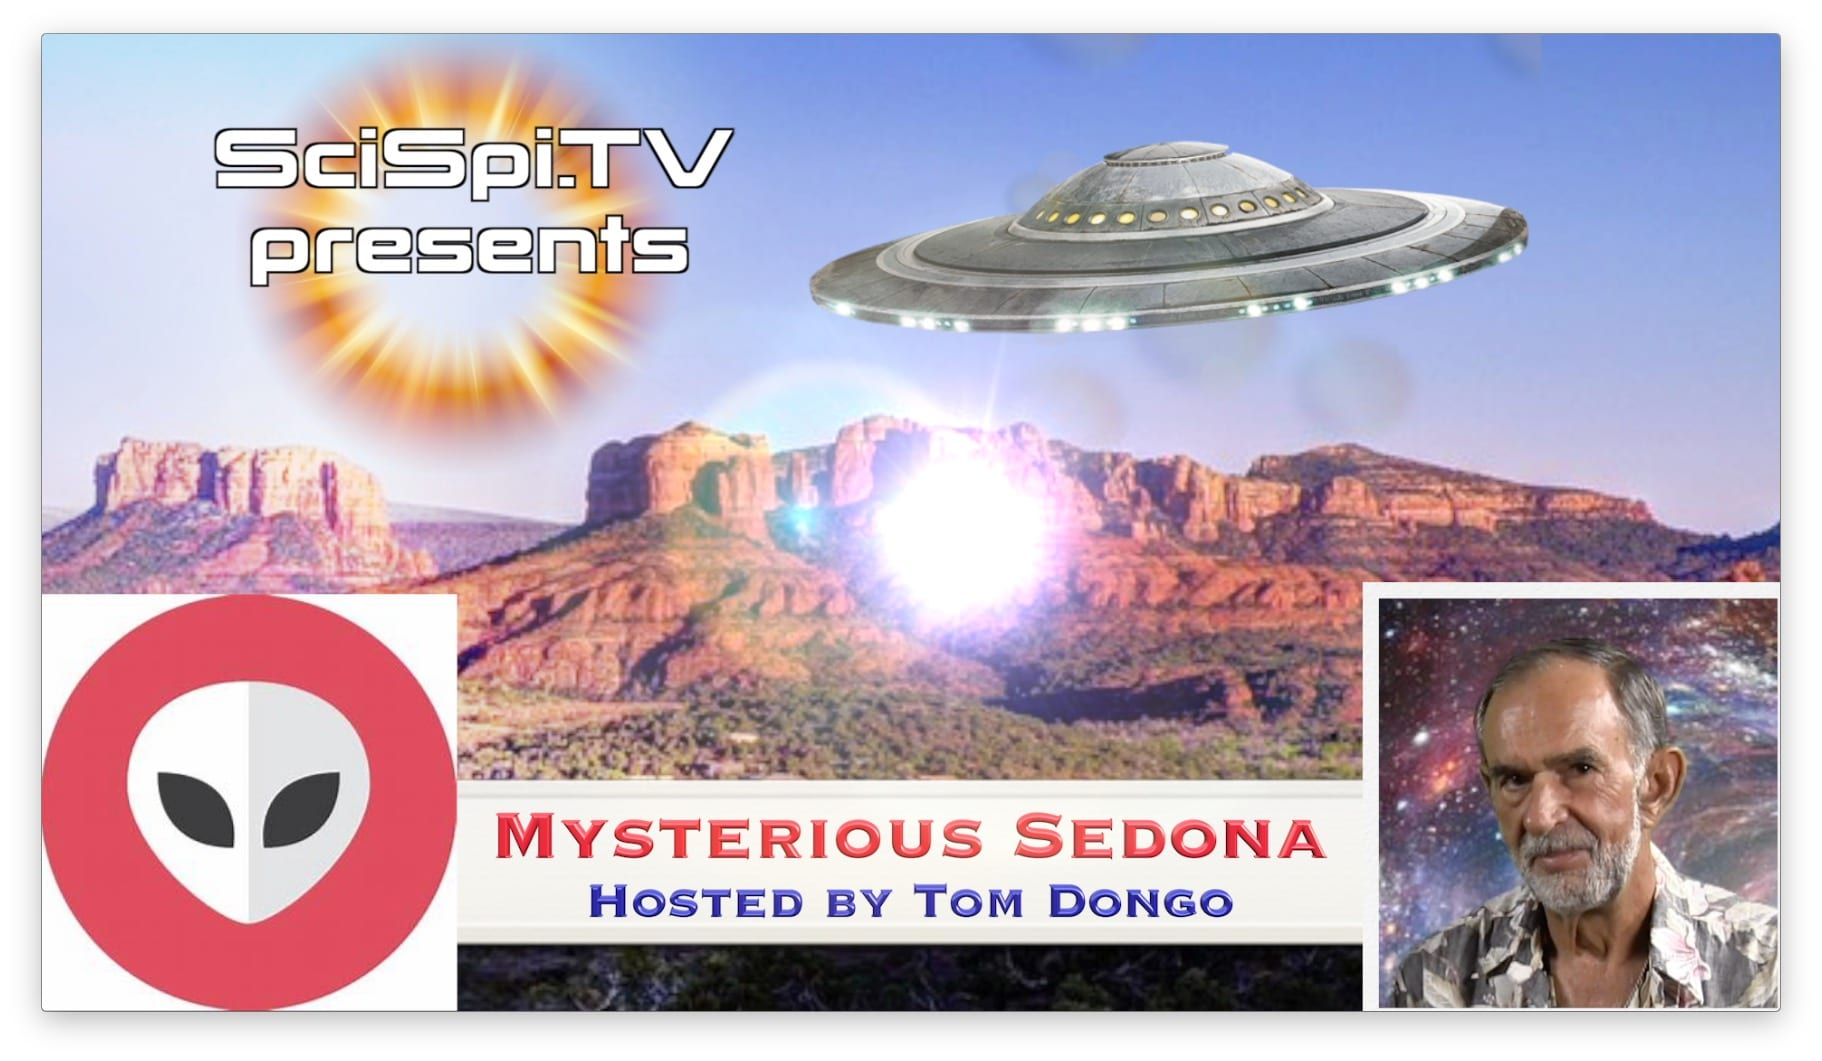 SS Presents Mysterious Sedona